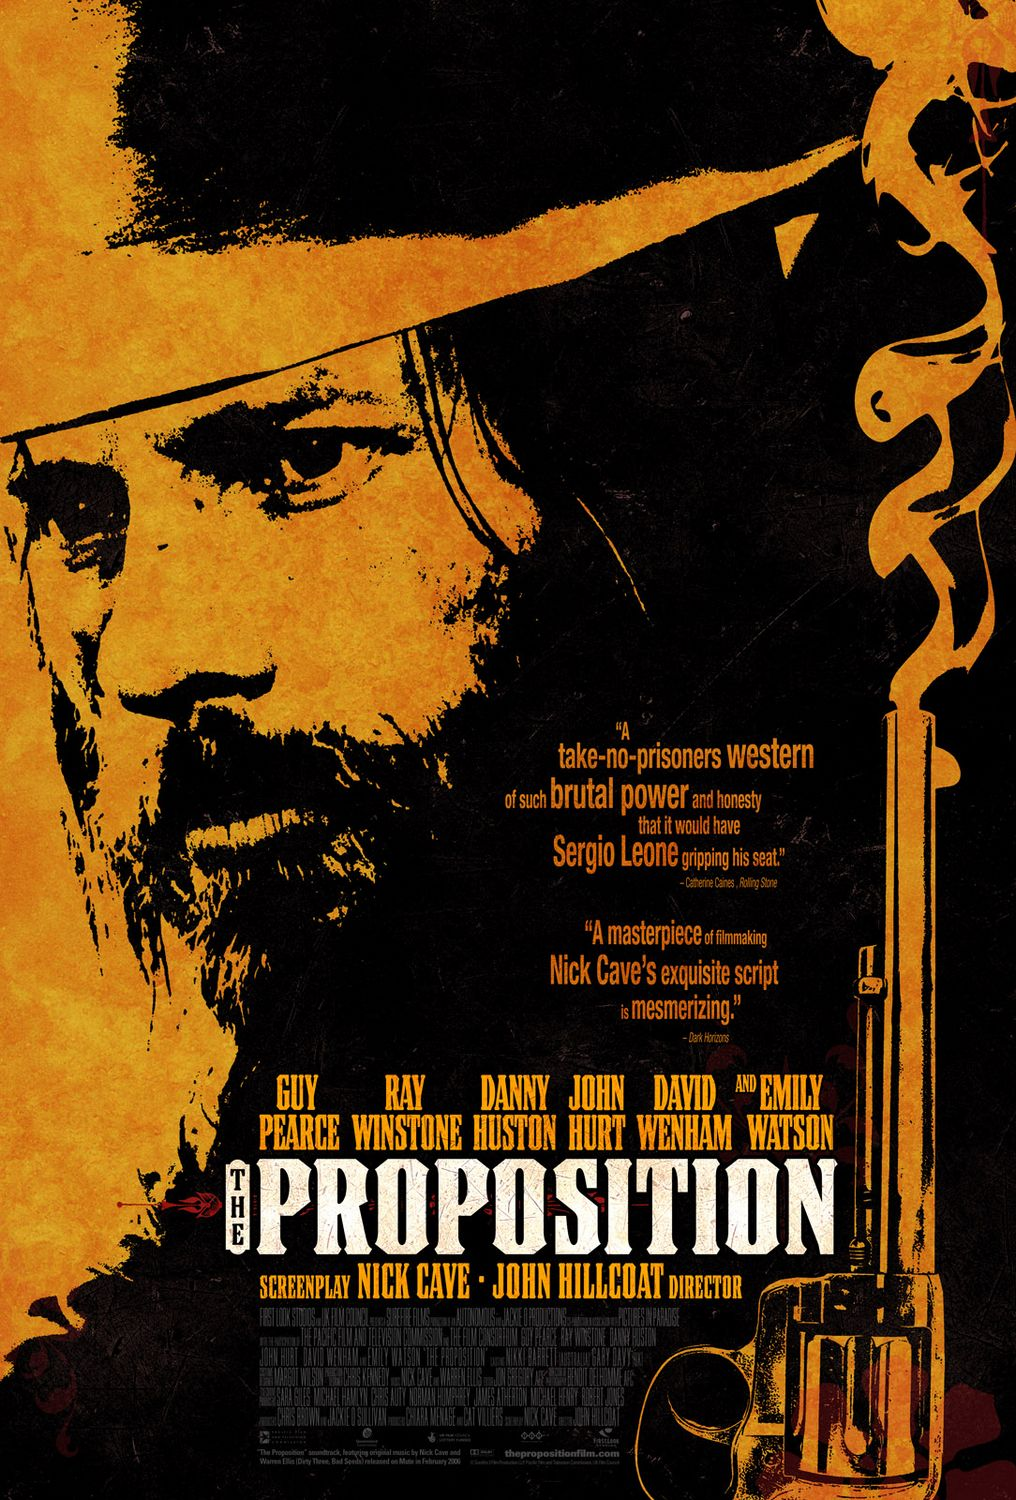 Proposition (2005) poster